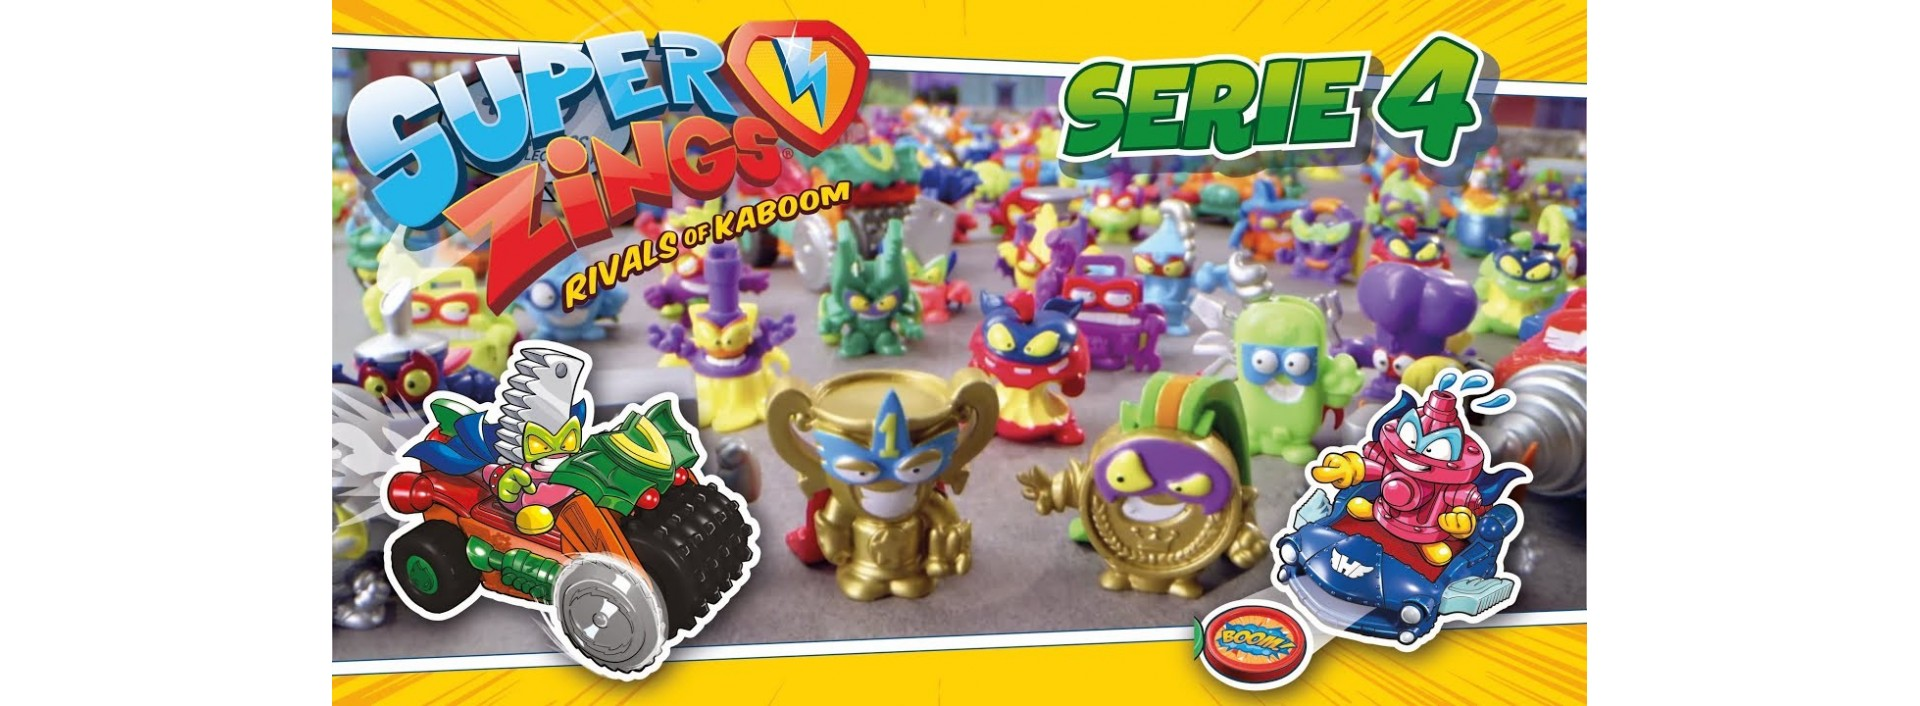 SUPER ZINGS SERIE 4